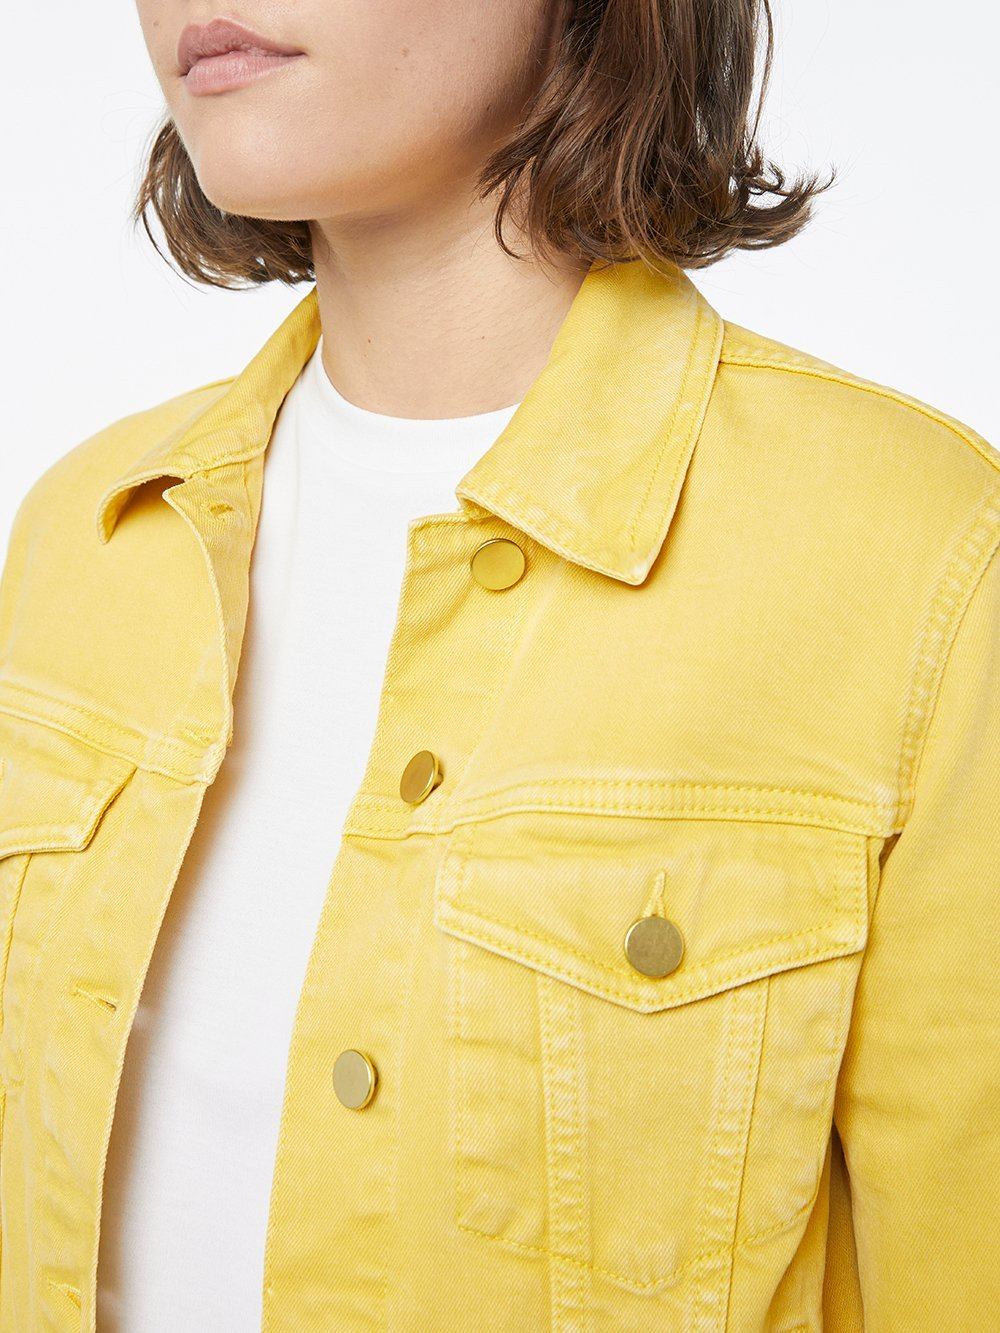 jacket detail view